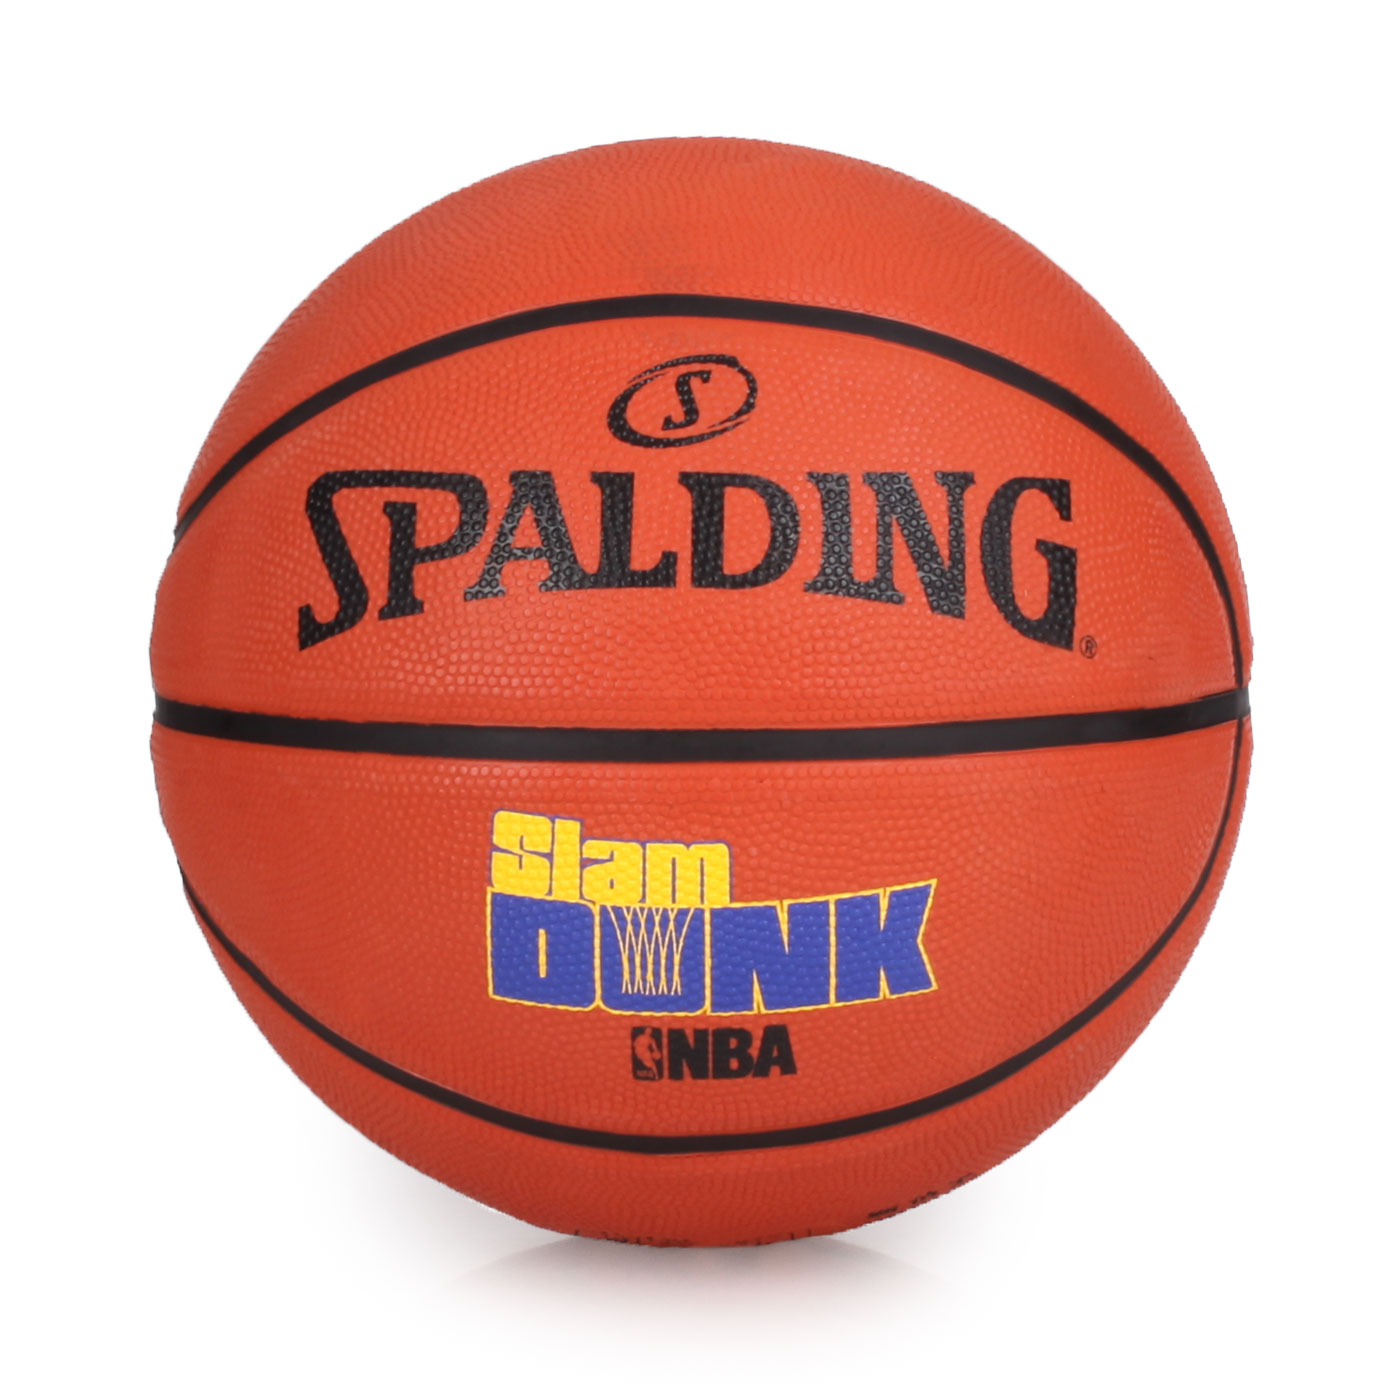 SPALDING Game Time系列-Slam Dunk 籃球 SPA83526 - 橘藍黃